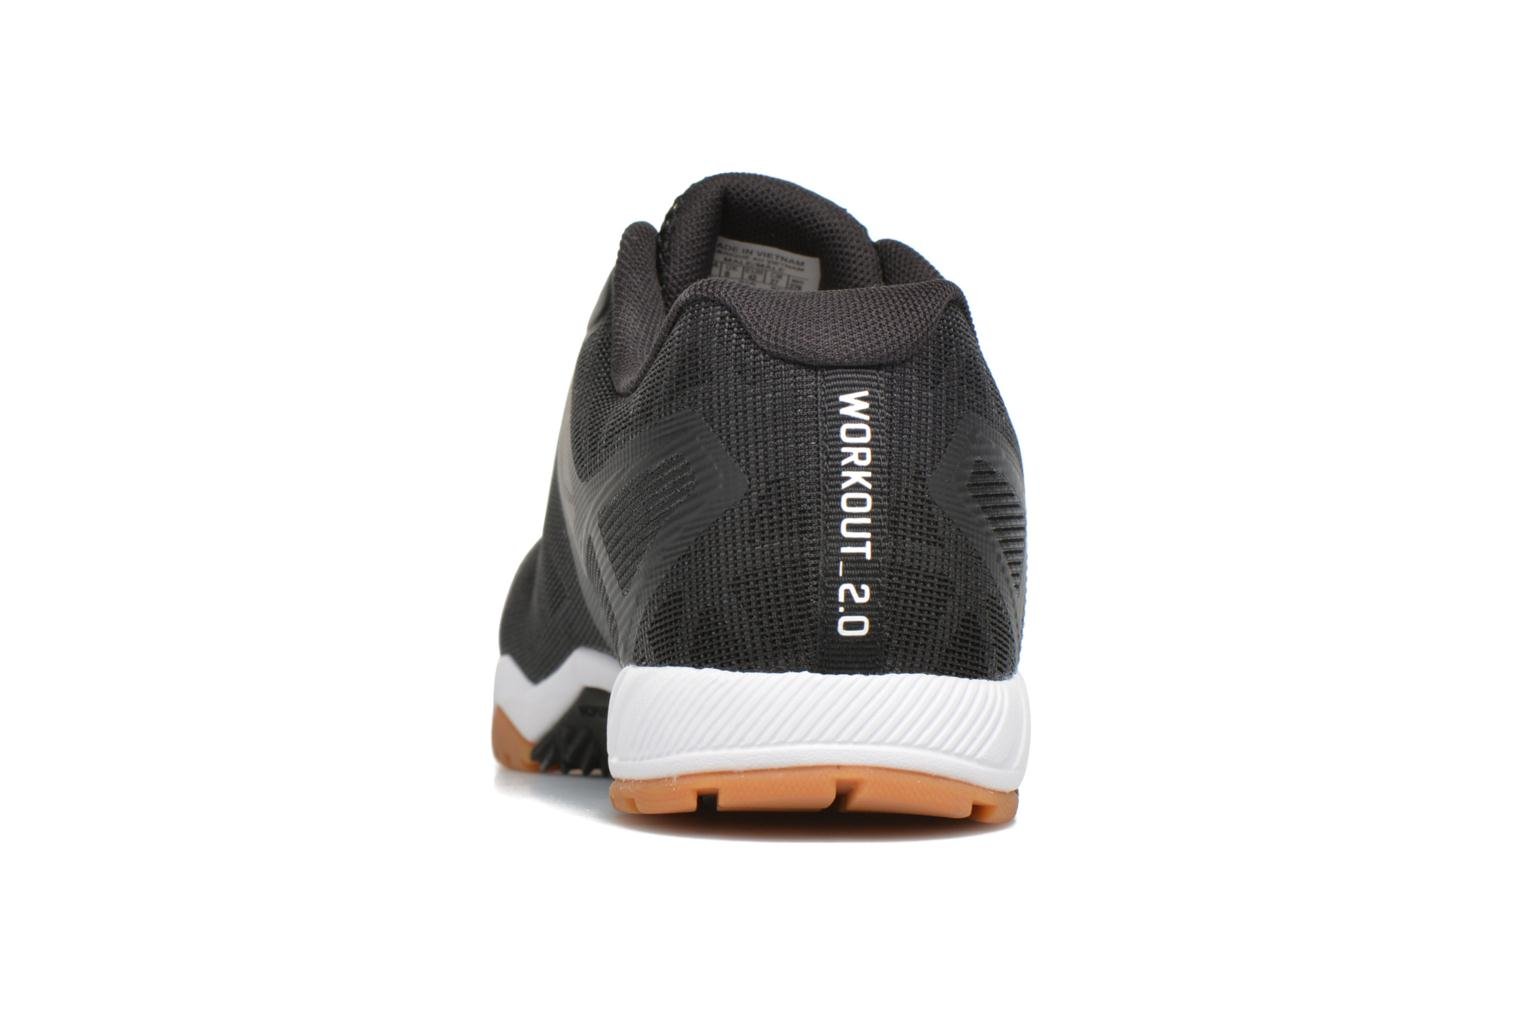 Ros Workout Tr 2.0 Black/Rbk Rubber Gum/White/Pewter